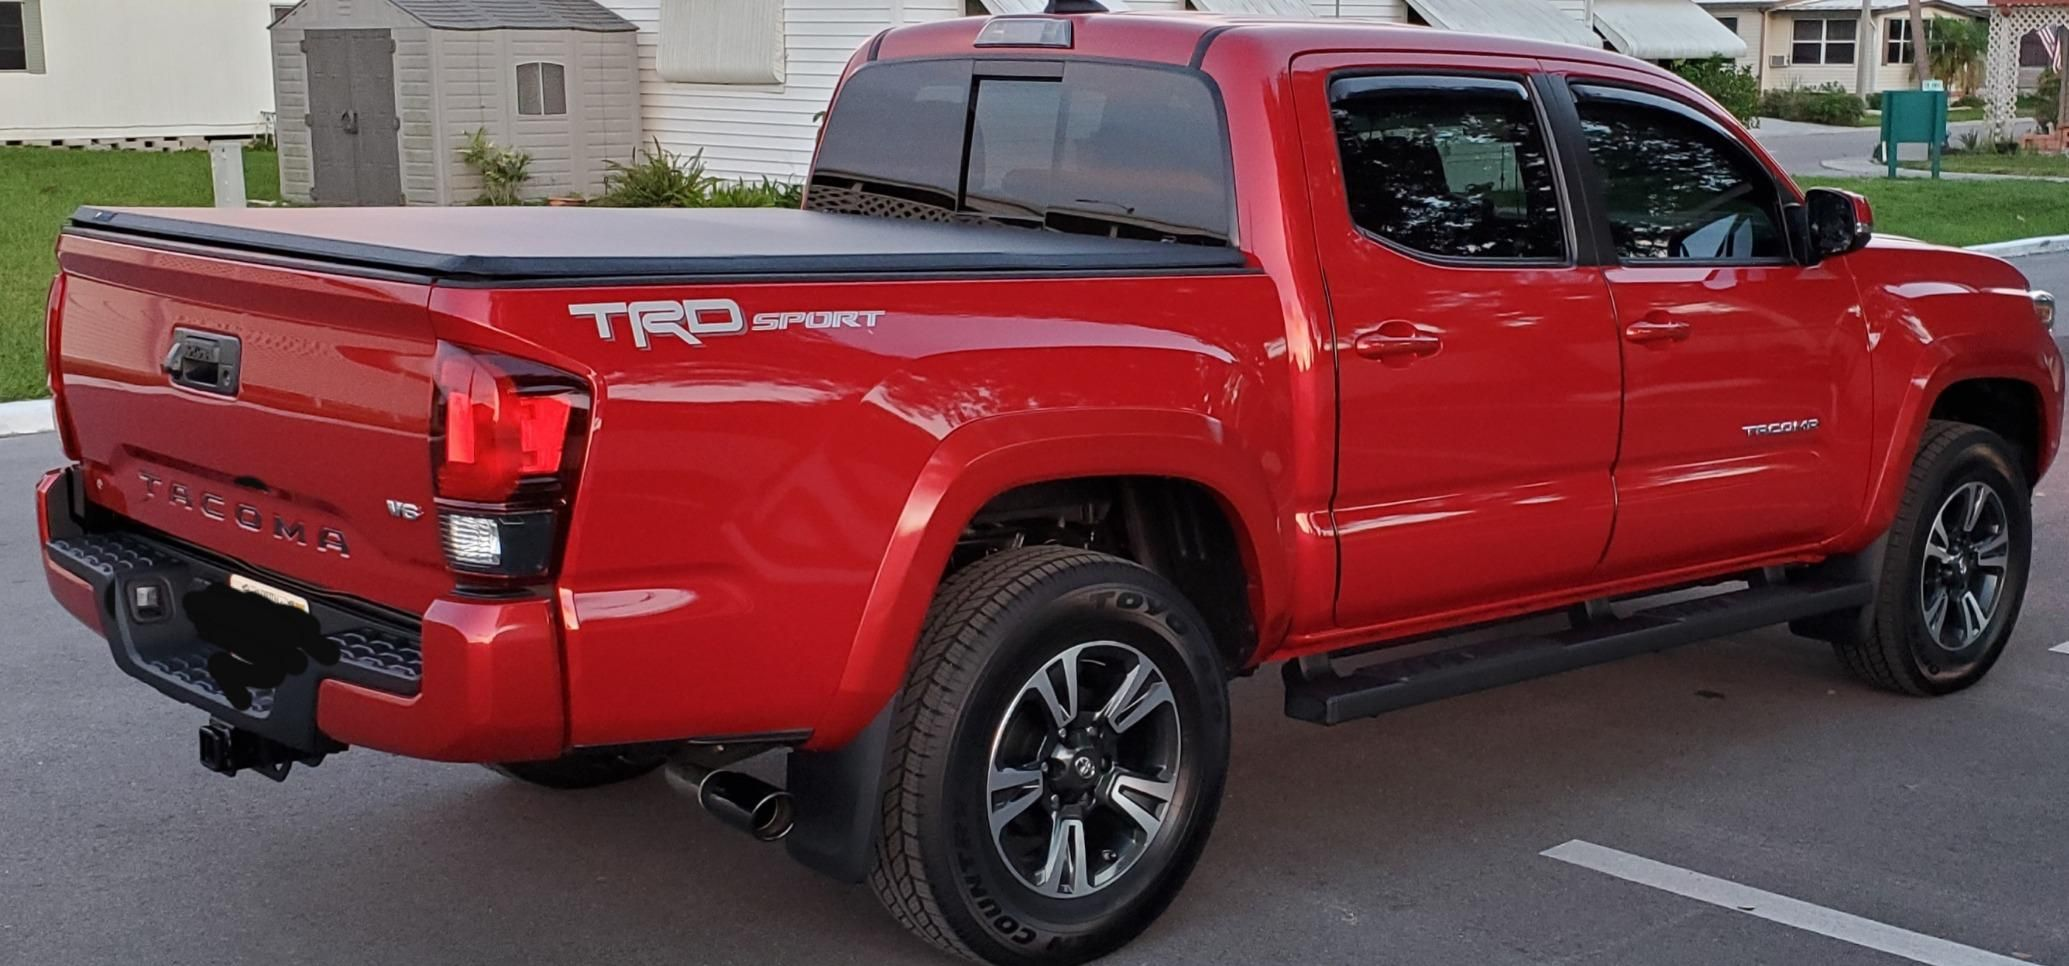 2019 Tacoma Trd Sport Red In 2020 Truck Bed Accessories Truck Bed Tonneau Cover